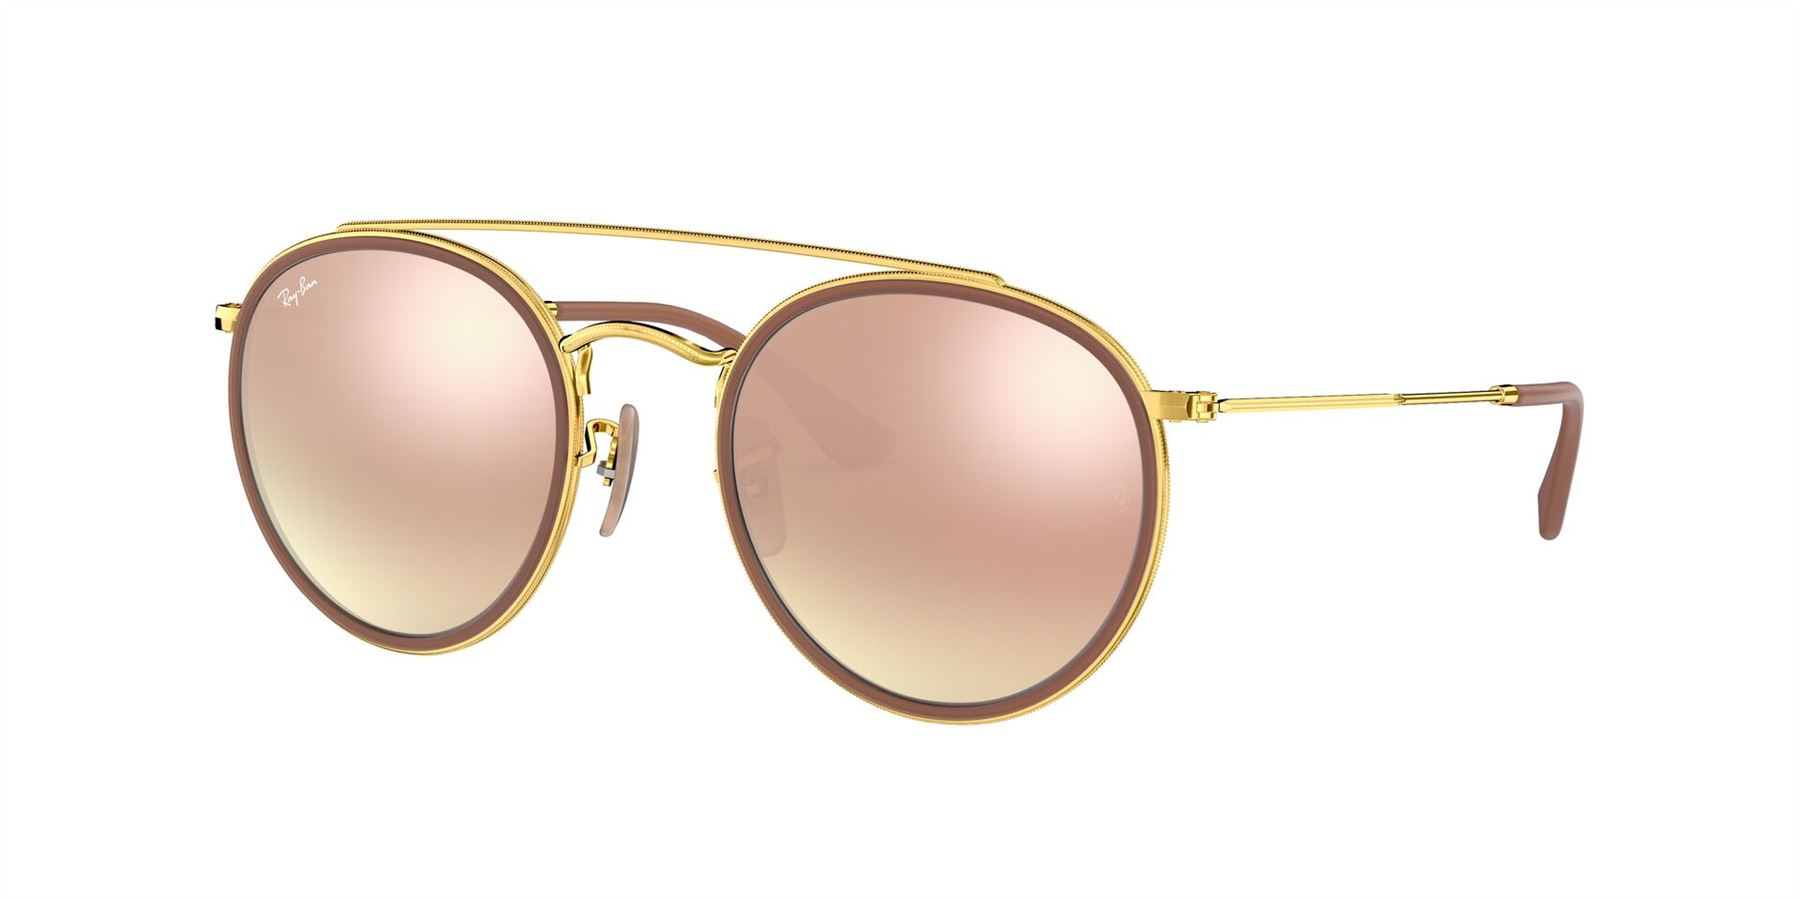 Ray-Ban Sunglasses RB3647N 001/7O Gold/Brown Gradient-Pink Mirror ** - Size - 51